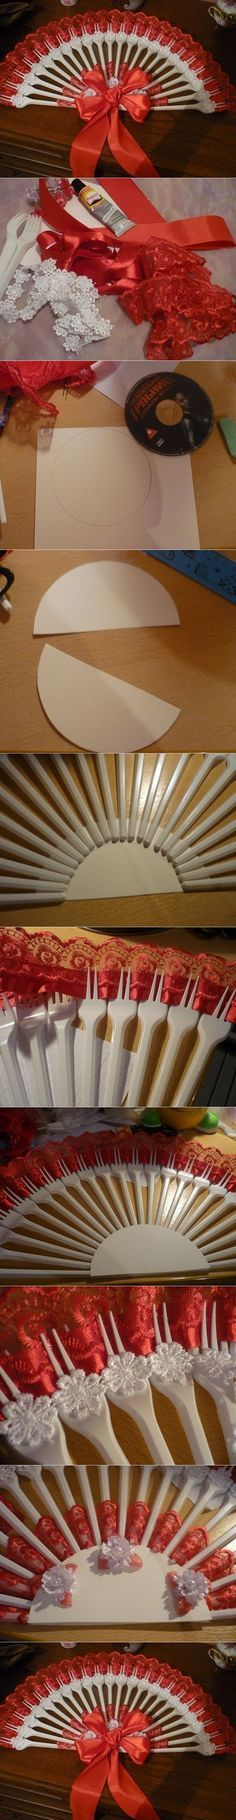 DIY Upcycled Plastic Fork Fan | www.FabArtDIY.com LIKE Us on Facebook ==> https://www.facebook.com/FabArtDIY